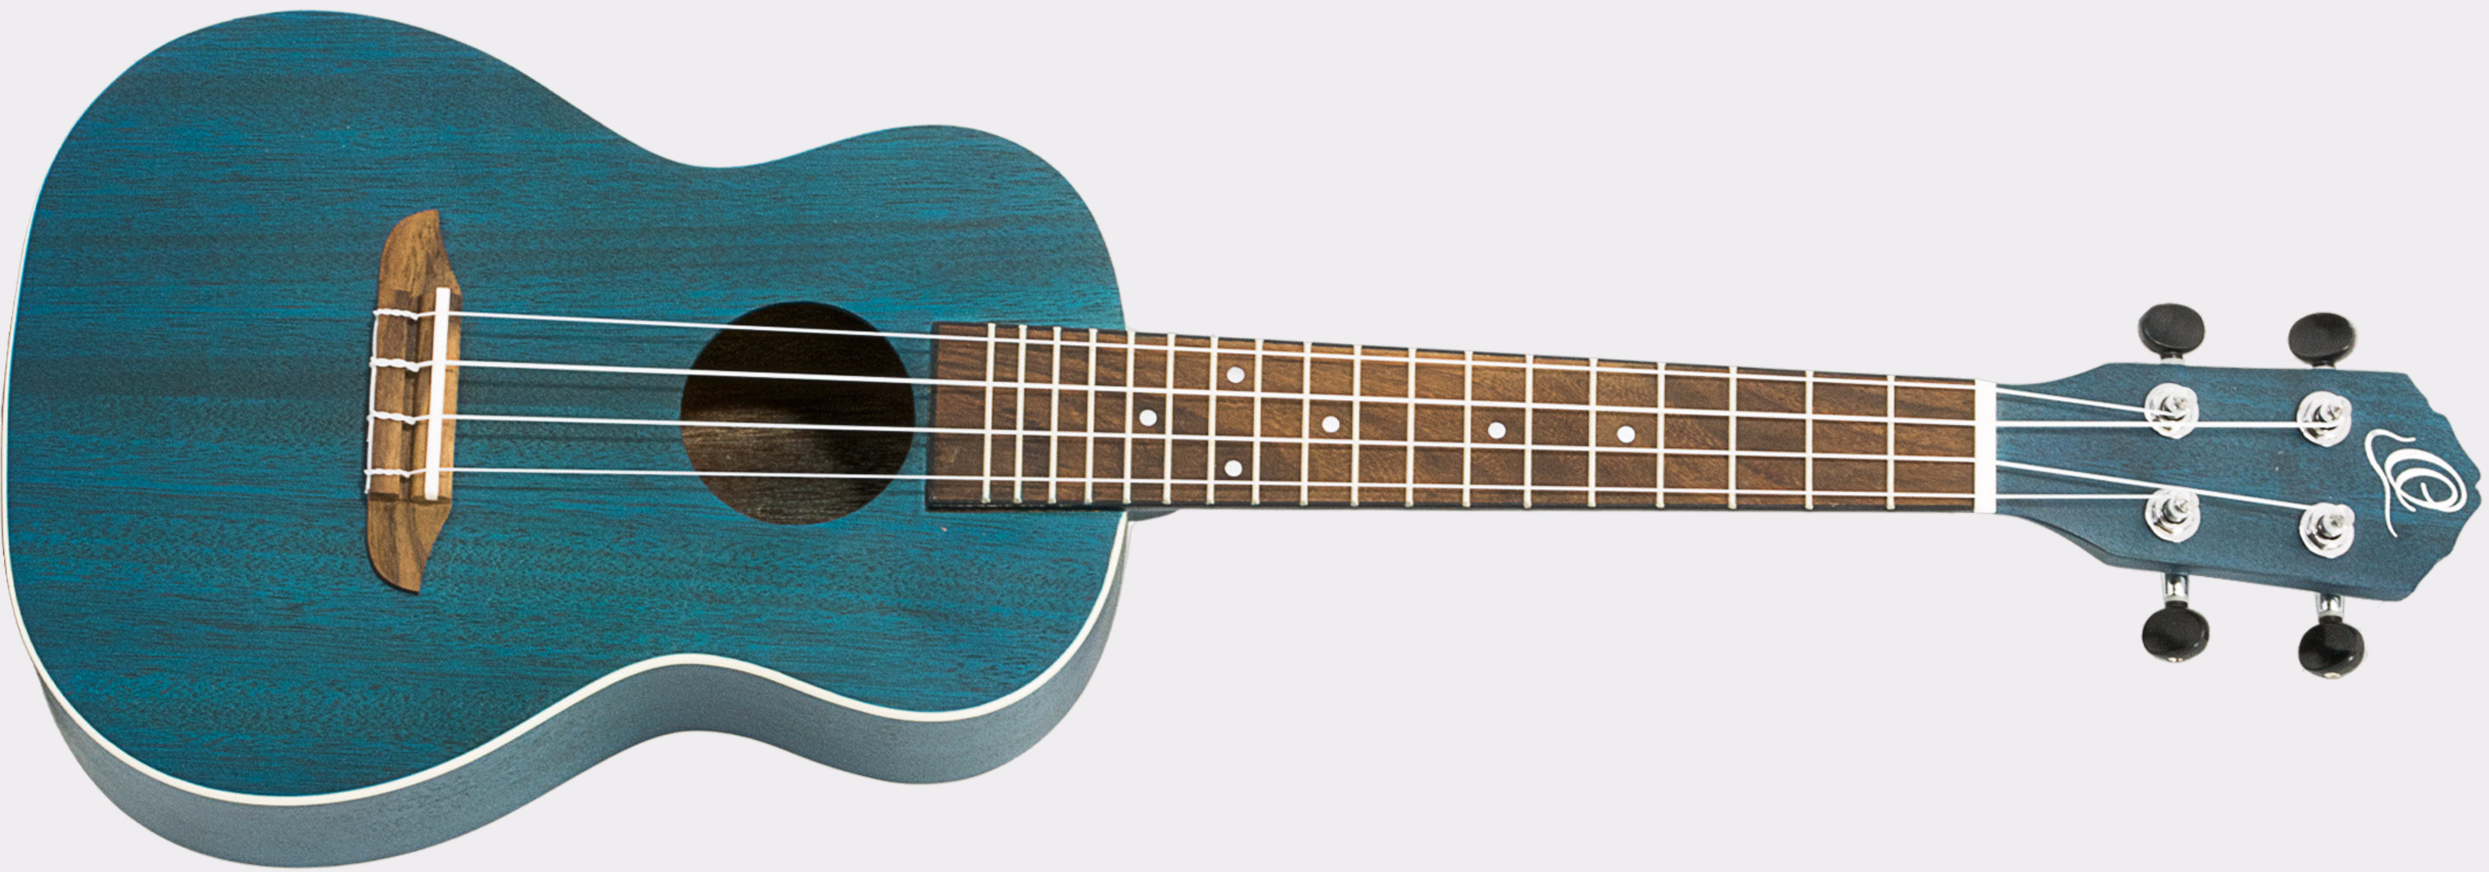 Ortega Earth Ukulele See Thru Blue Front